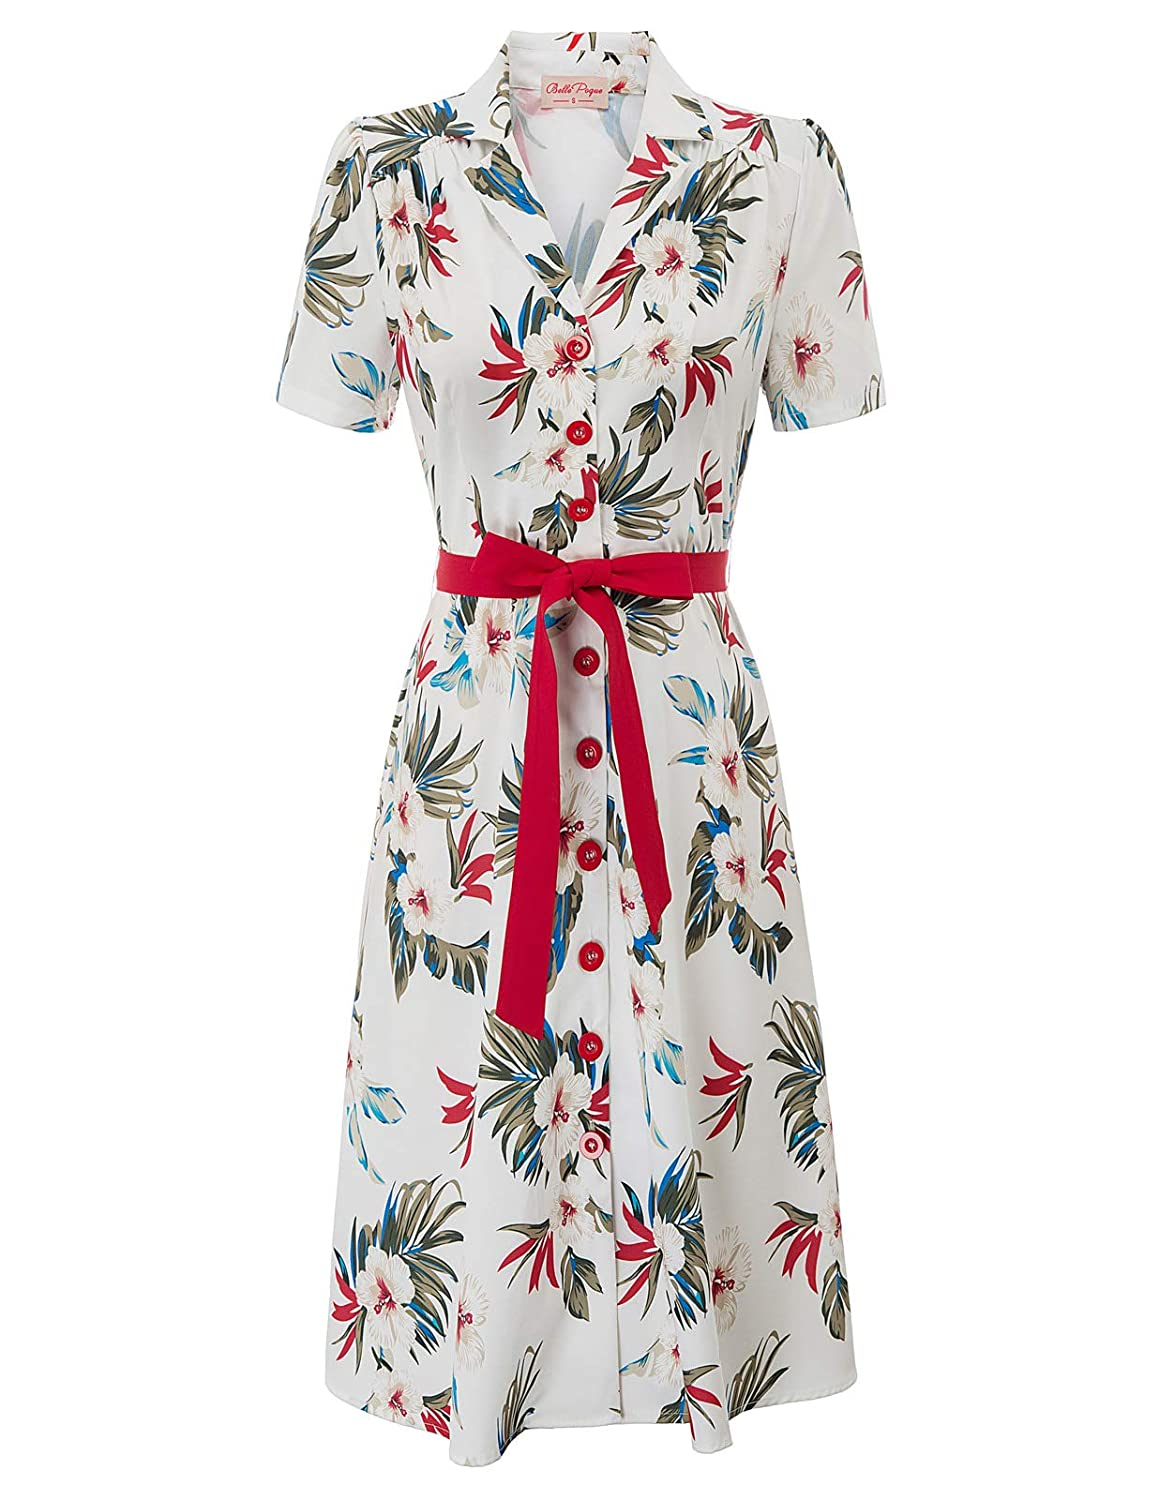 1930s Day Dresses, Afternoon Dresses History Belle Poque Women Vintage Floral Print Midi Dress 1950s Tea Dress with Belt BP878 $27.99 AT vintagedancer.com